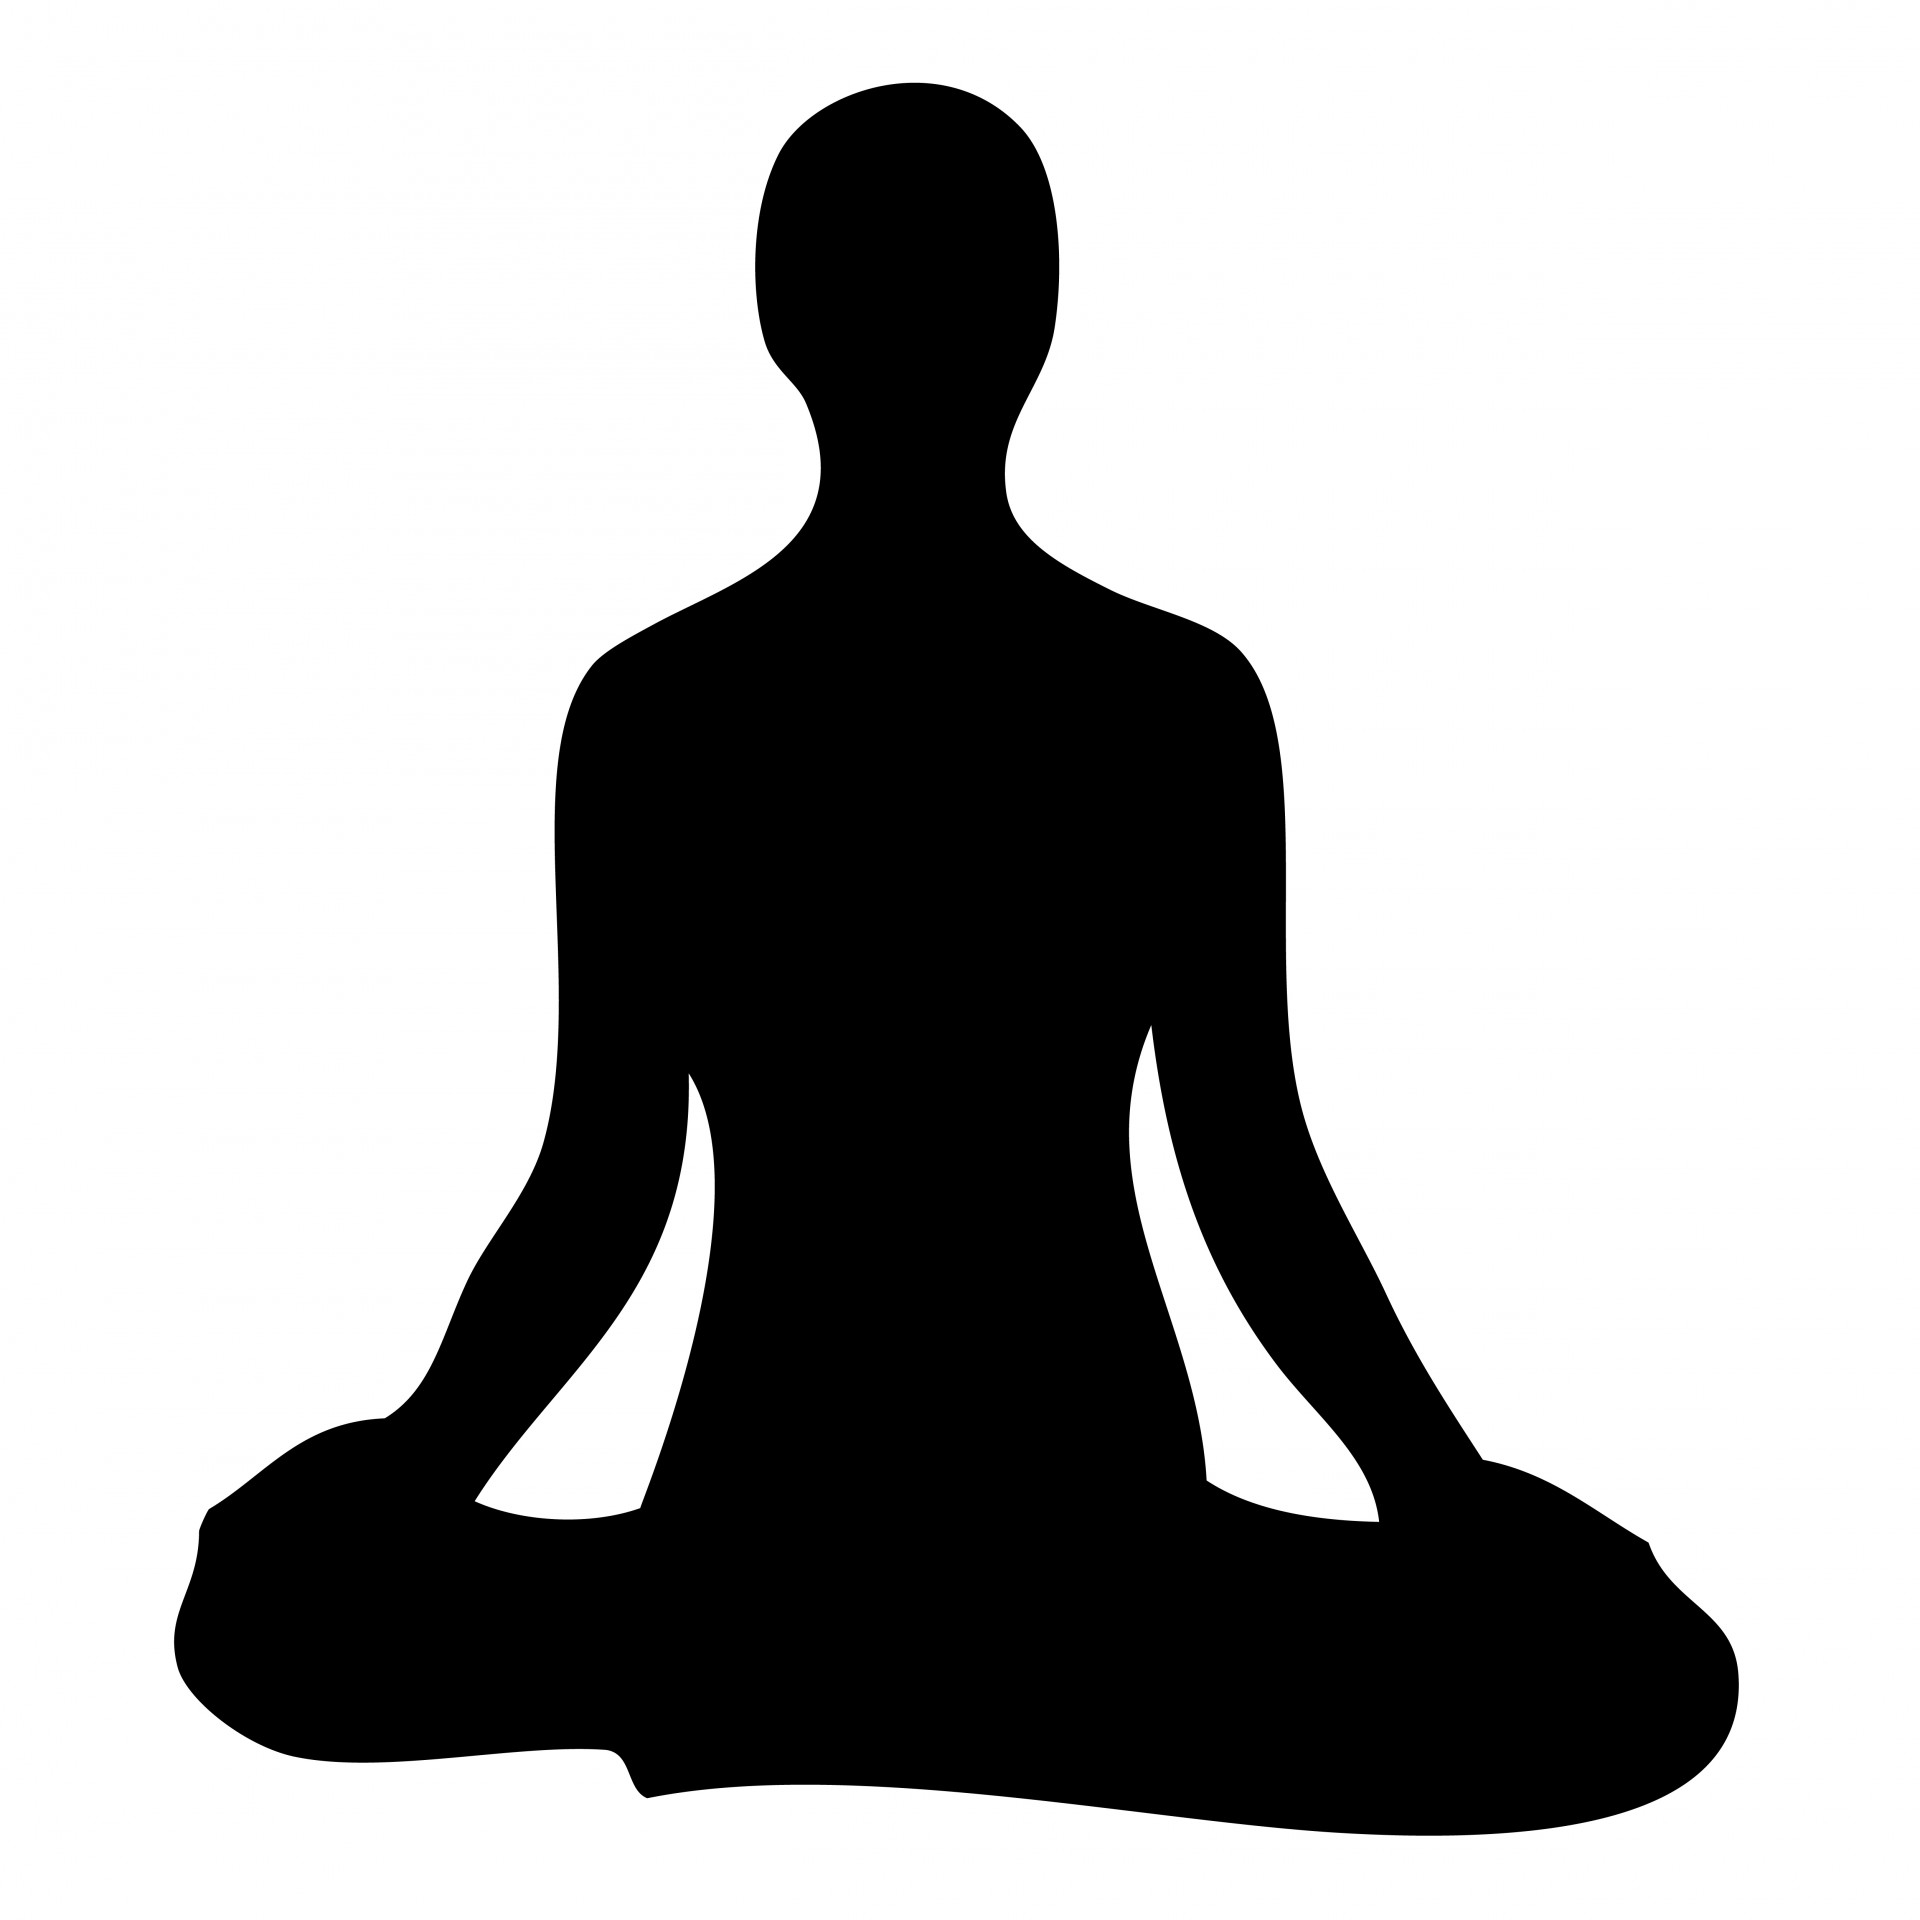 Meditation clipart physical health Pictures Stock Meditation Photo Free